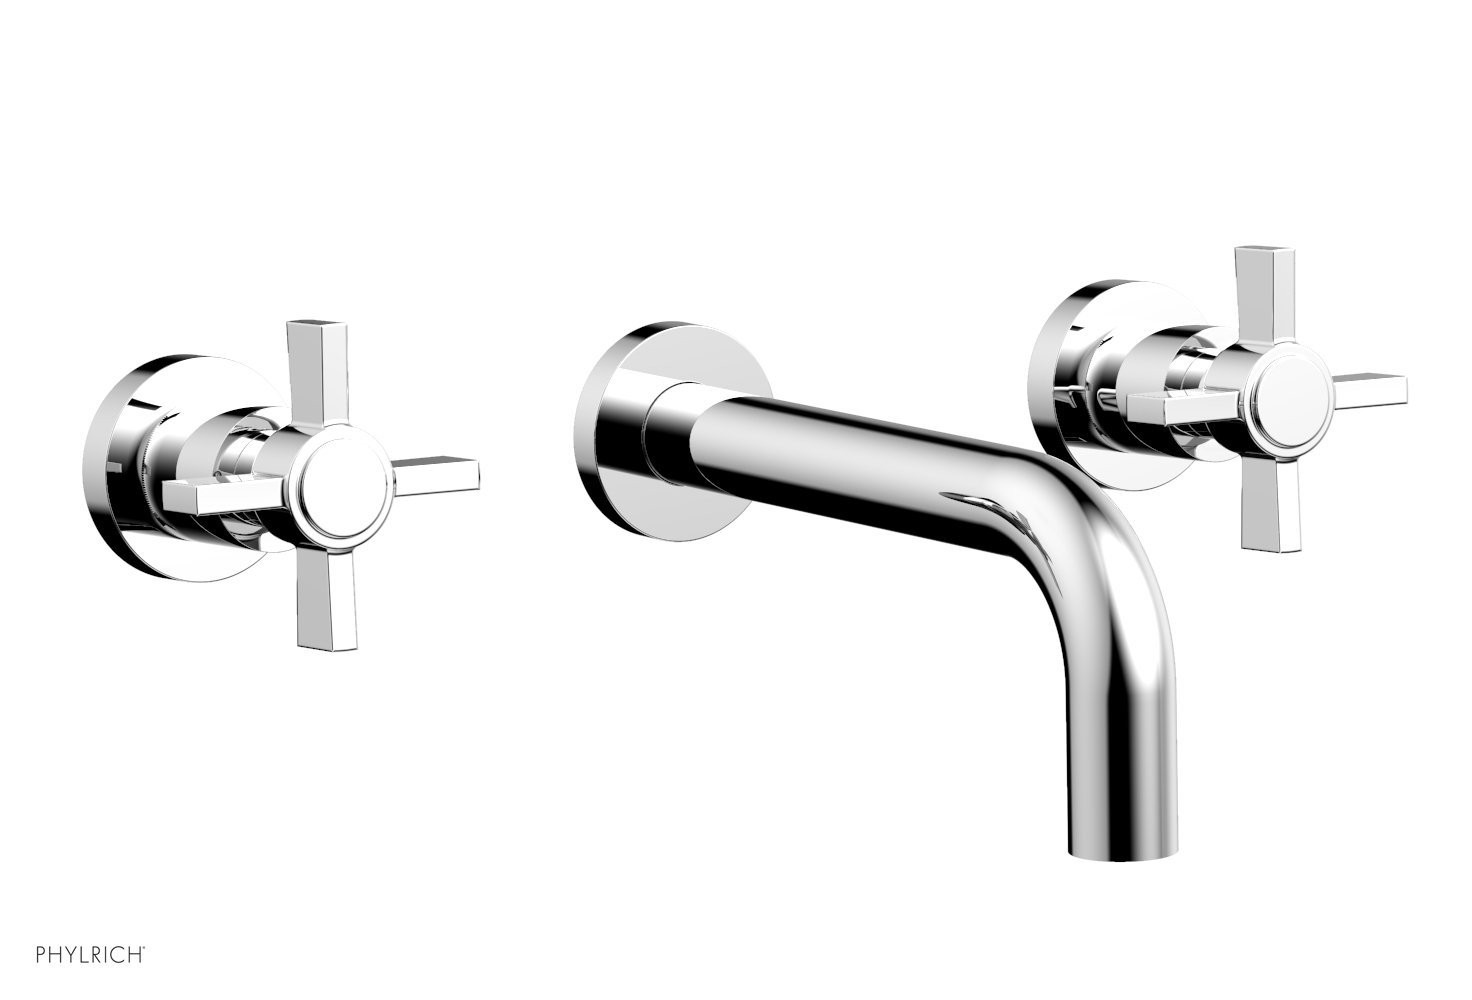 PHYLRICH D1137 BASIC THREE HOLES WIDESPREAD WALL TUB SET WITH BLADE CROSS HANDLES